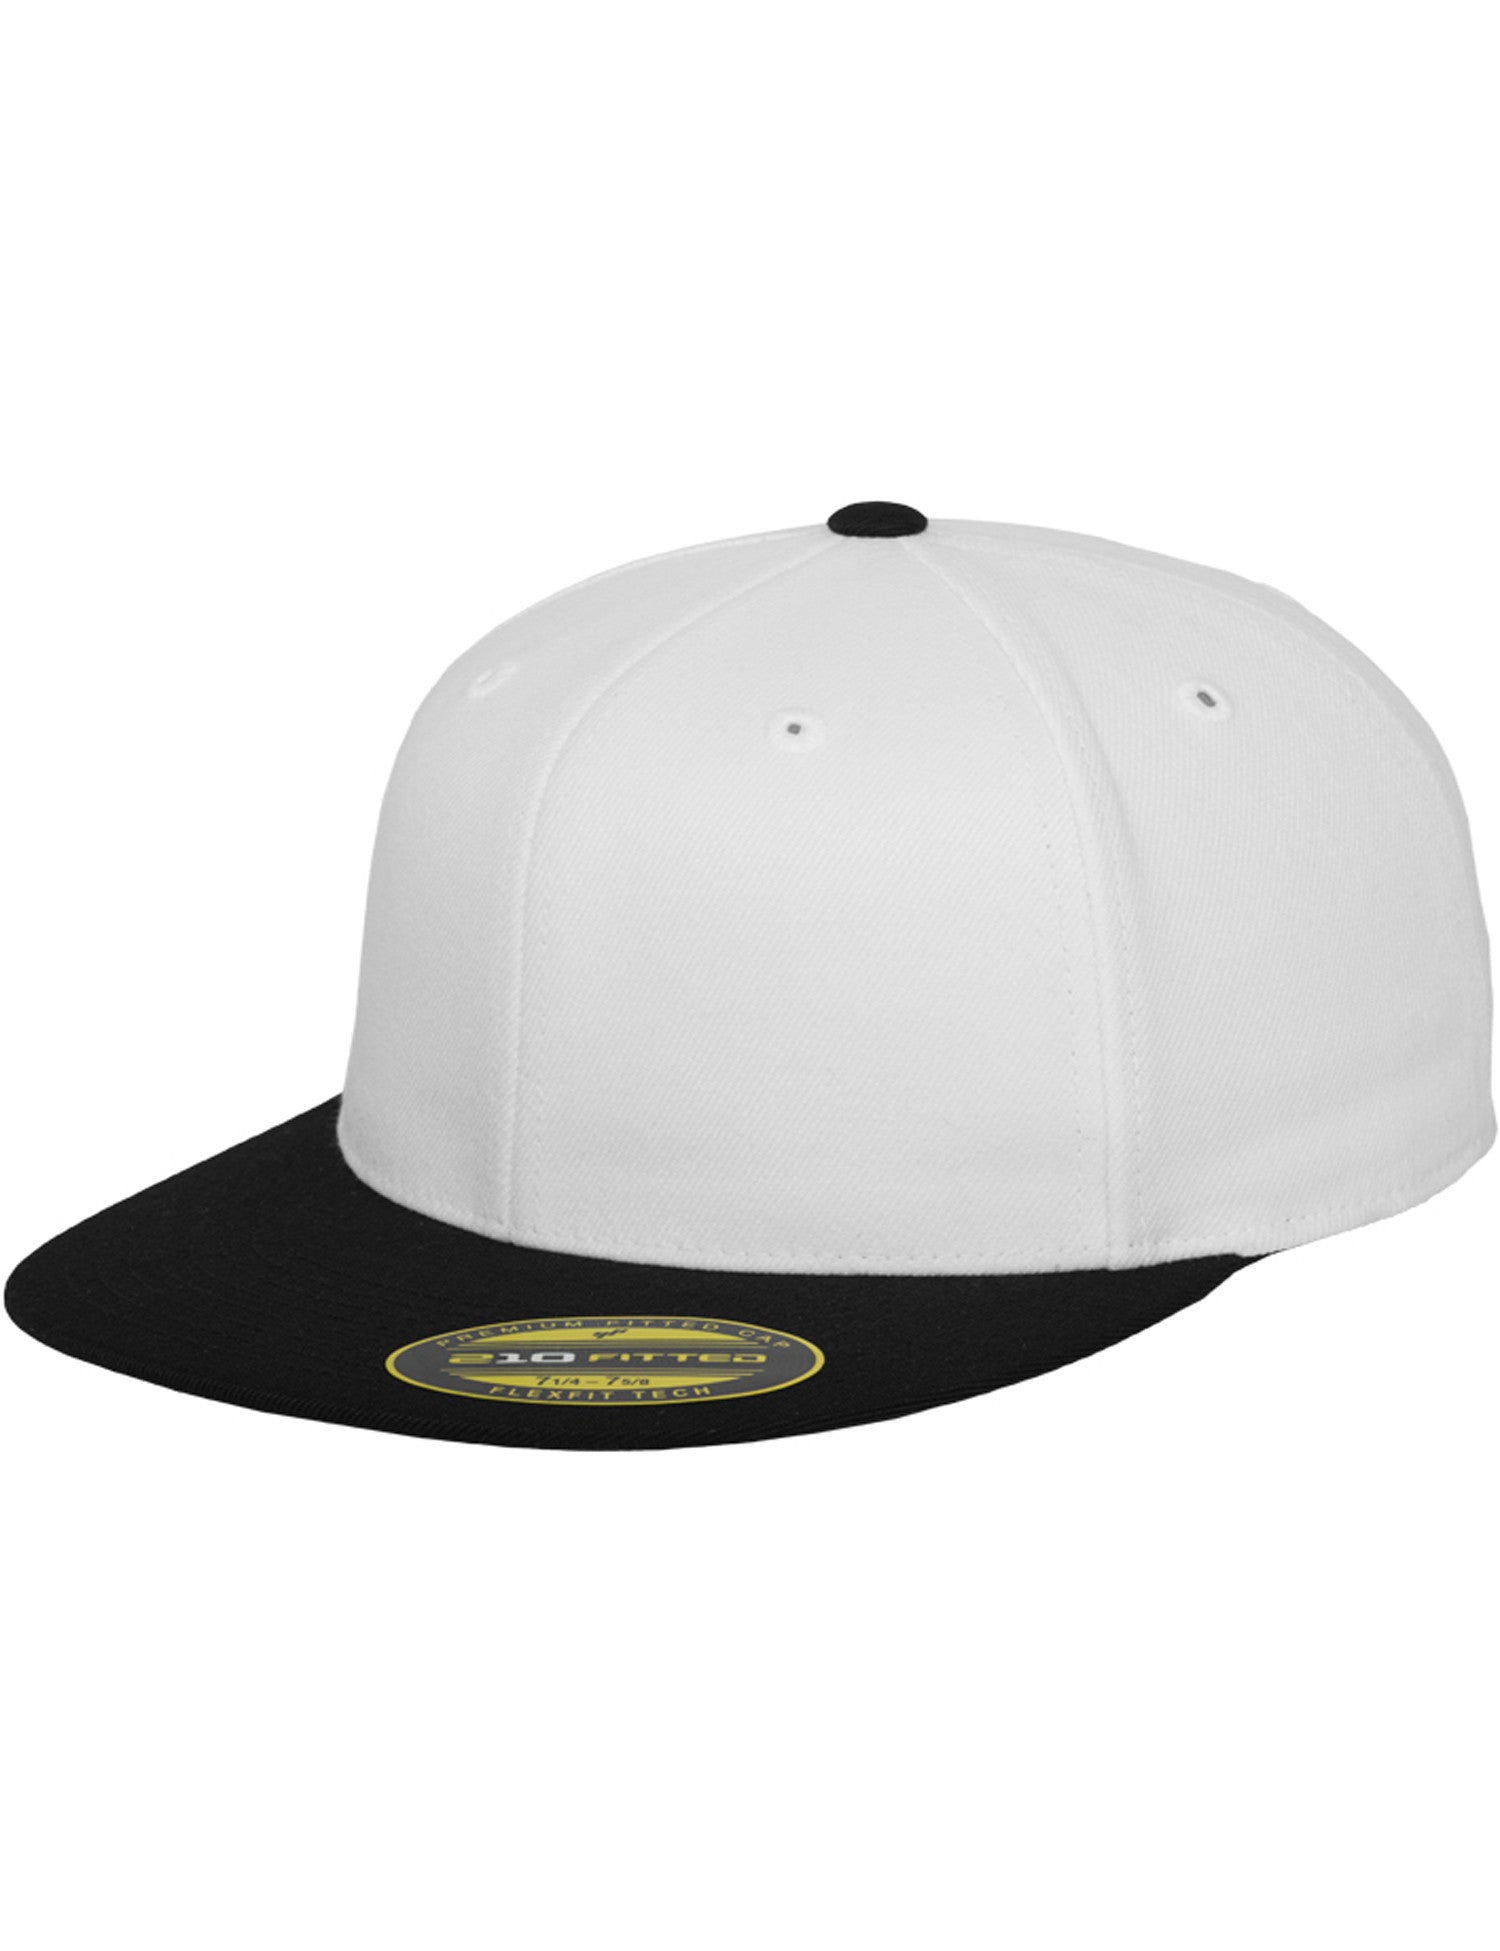 PREMIUM 210 FITTED 2-TONED CAPS White